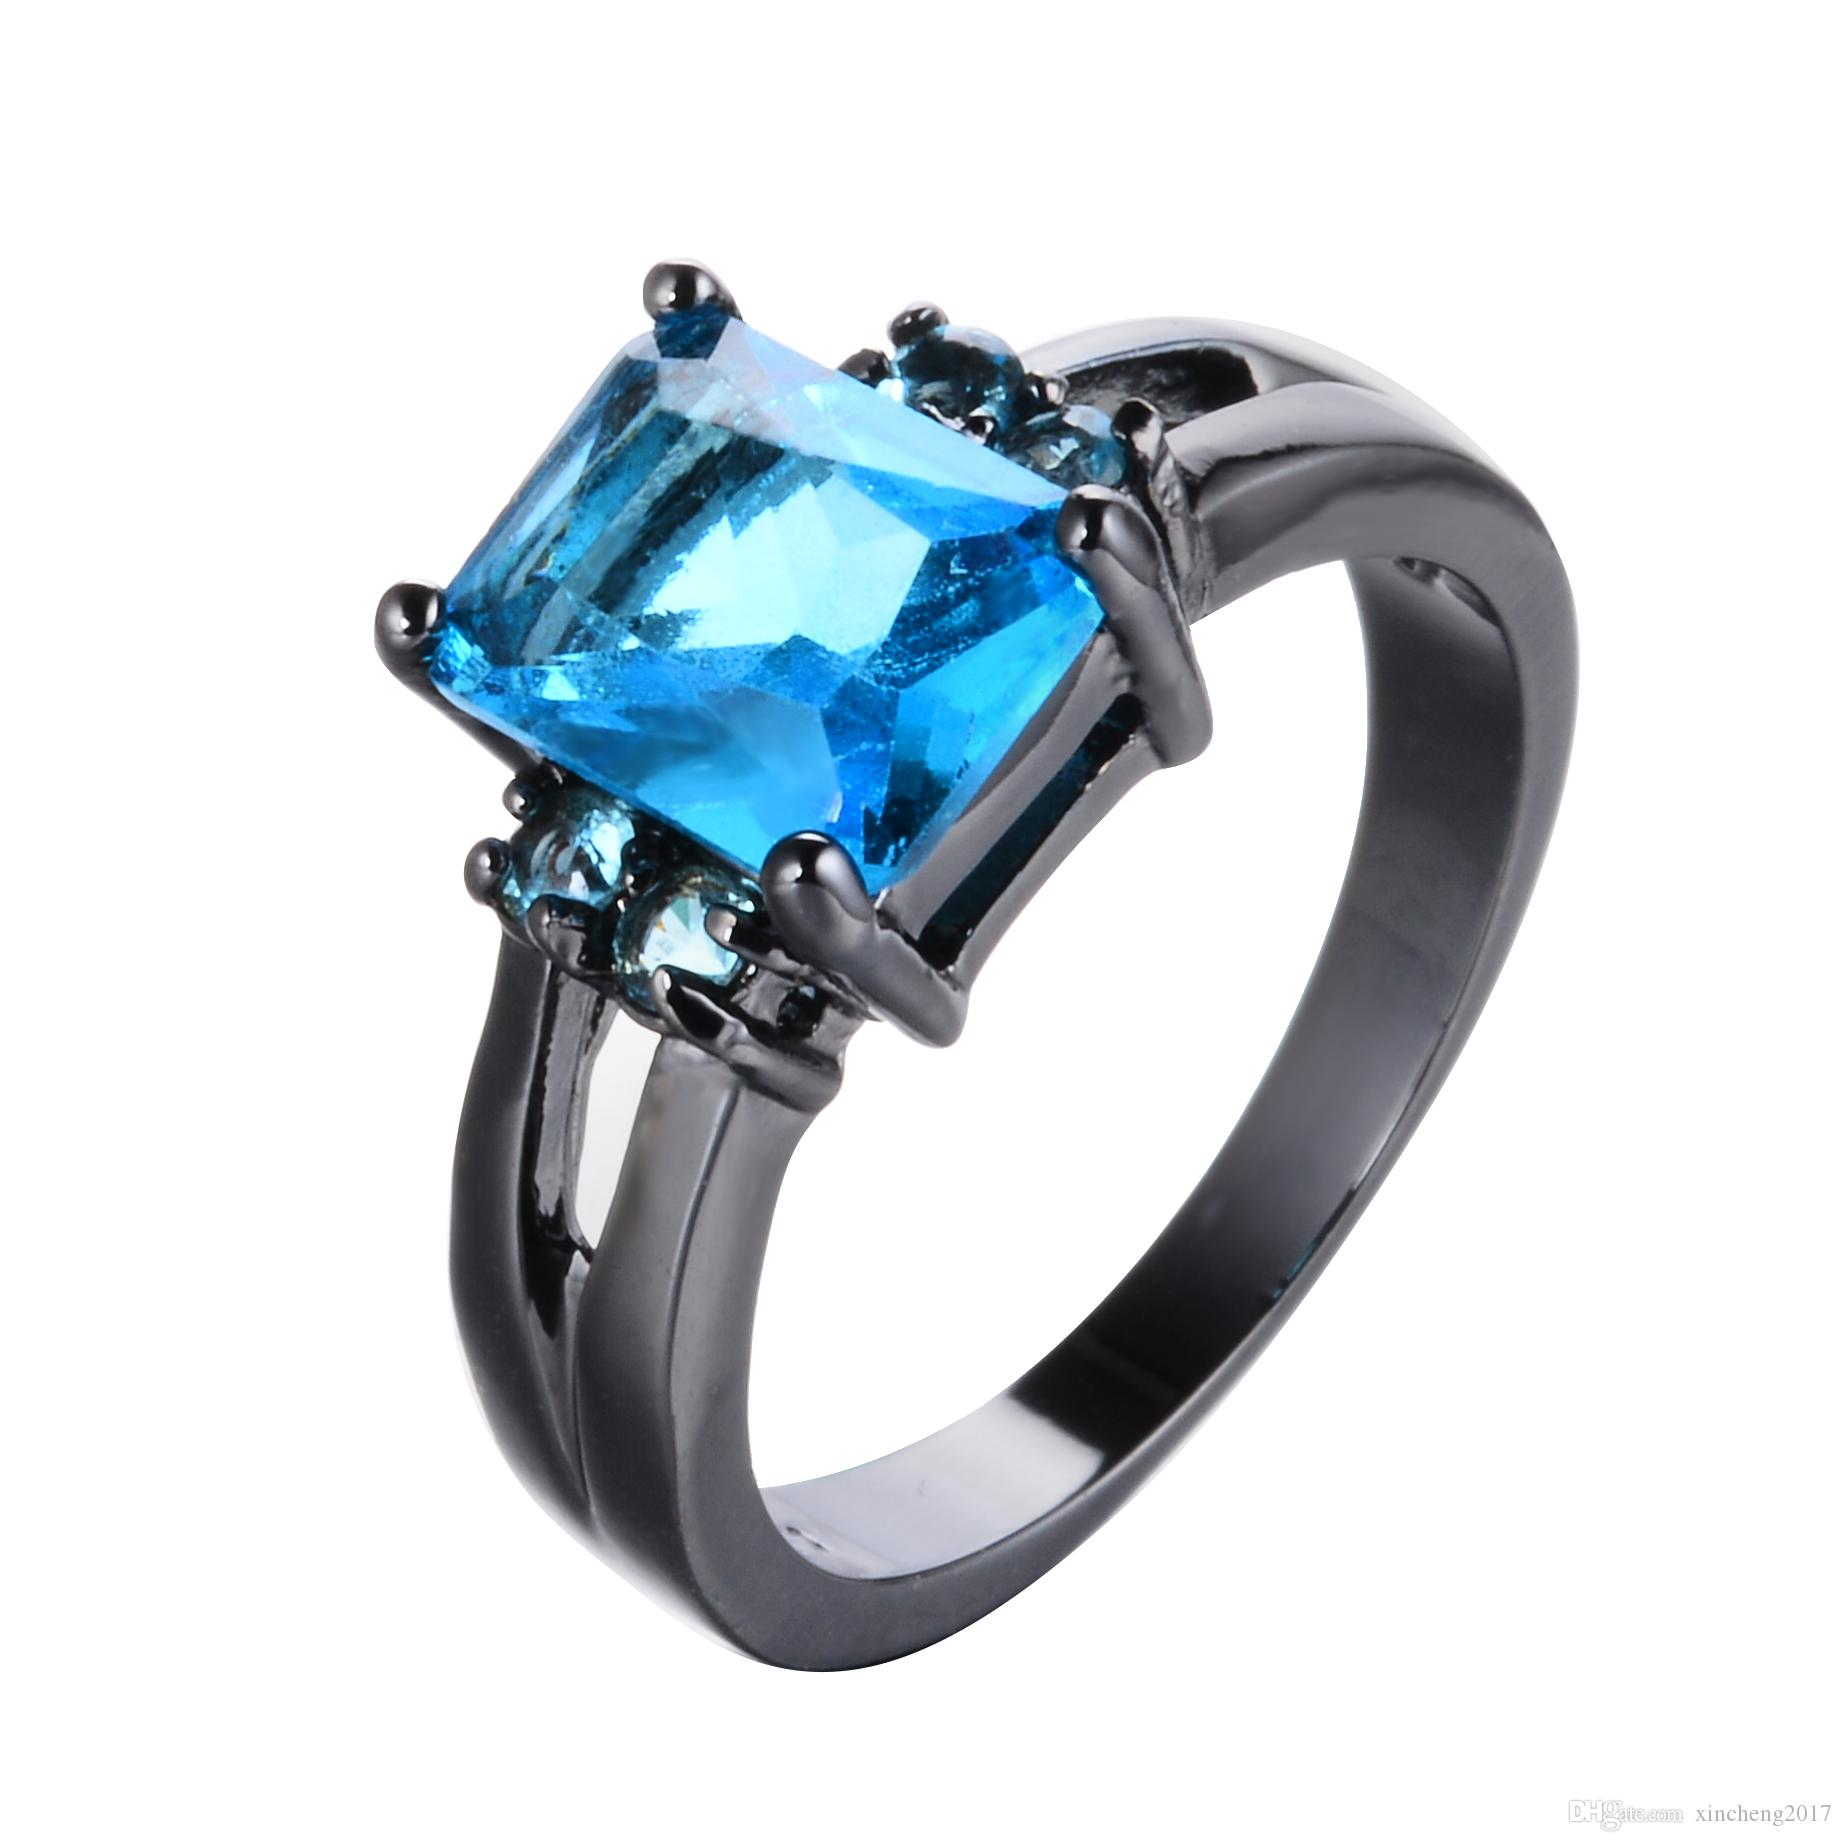 jewelry london rings carats design sizes amazon blue com nickel in finish topaz stone ring sterling silver rhodium dp to